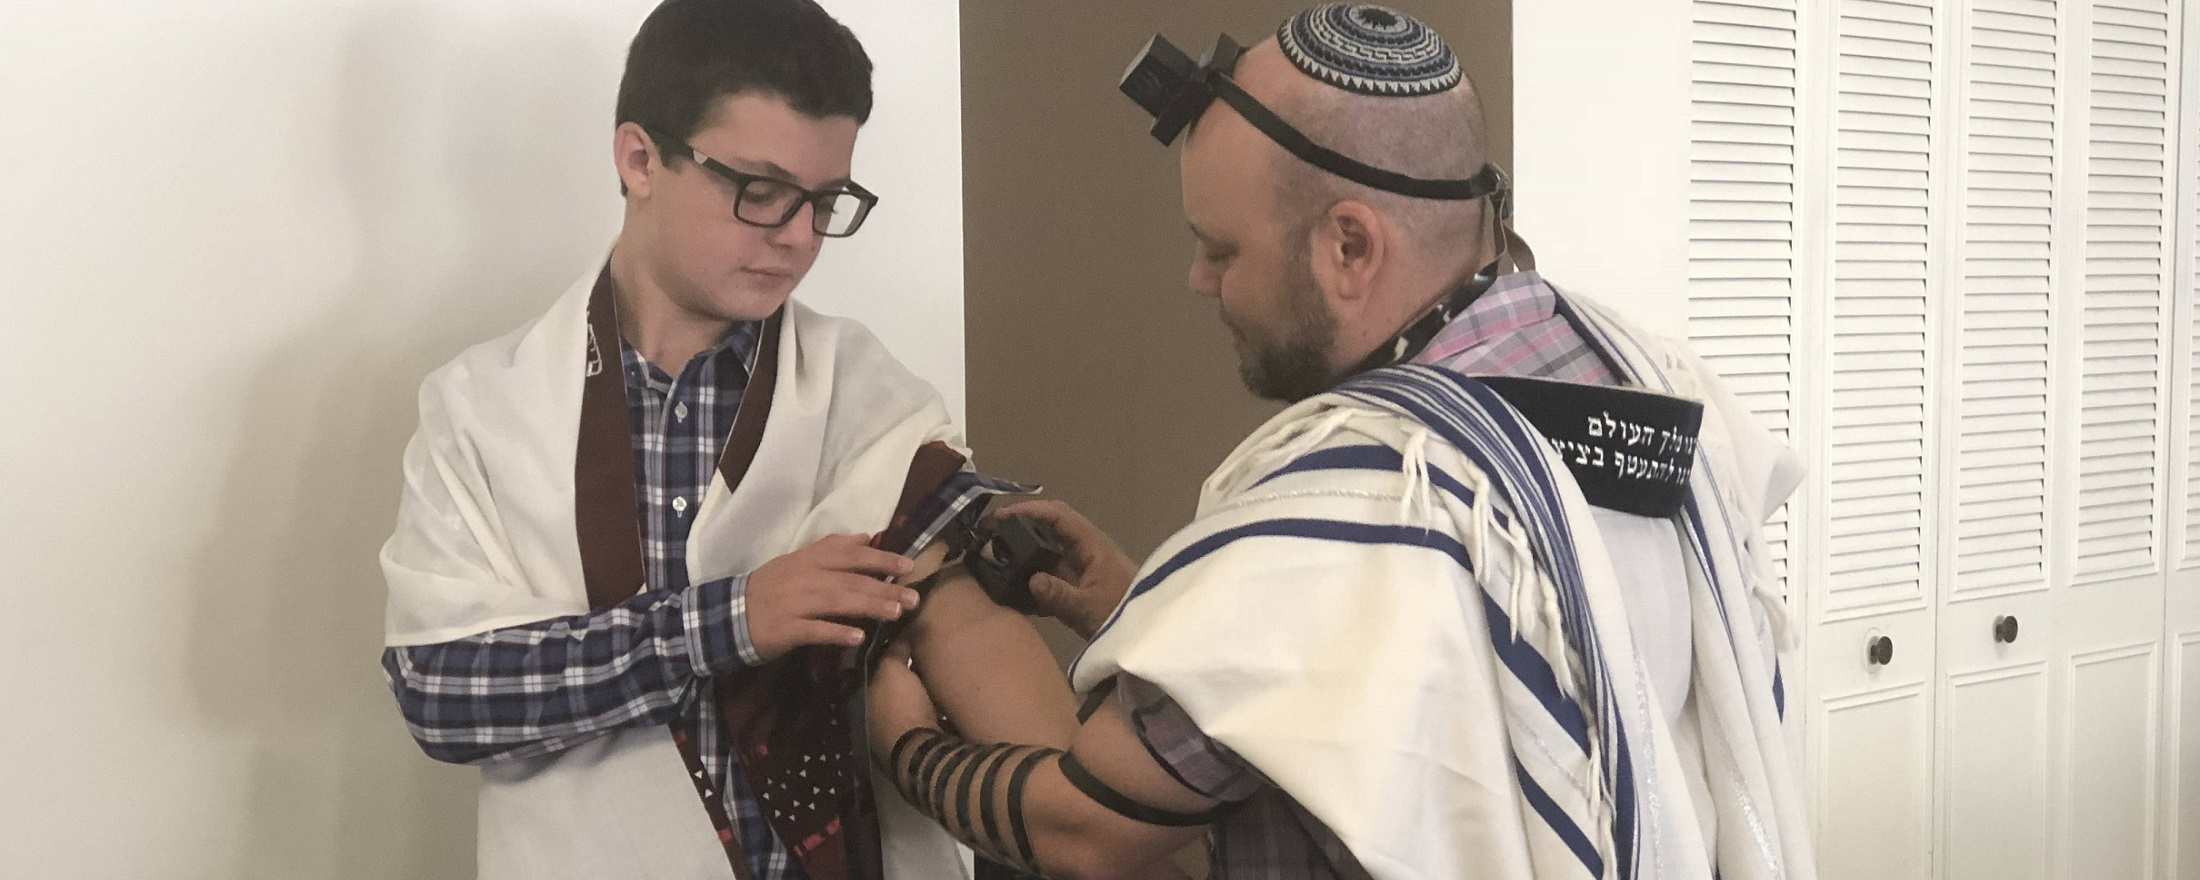 """<a href=""""https://www.shaareikodesh.org/rabbis-message""""                                     target="""""""">                                                                 <span class=""""slider_title"""">                                     Life Cycle                                </span>                                                                 </a>                                                                                                                                                                                       <span class=""""slider_description"""">A Student Learns How to Lay Tefilin as He Becomes Bar Mitzvah</span>                                                                                     <a href=""""https://www.shaareikodesh.org/rabbis-message"""" class=""""slider_link""""                             target="""""""">                             Our Rabbi                            </a>"""